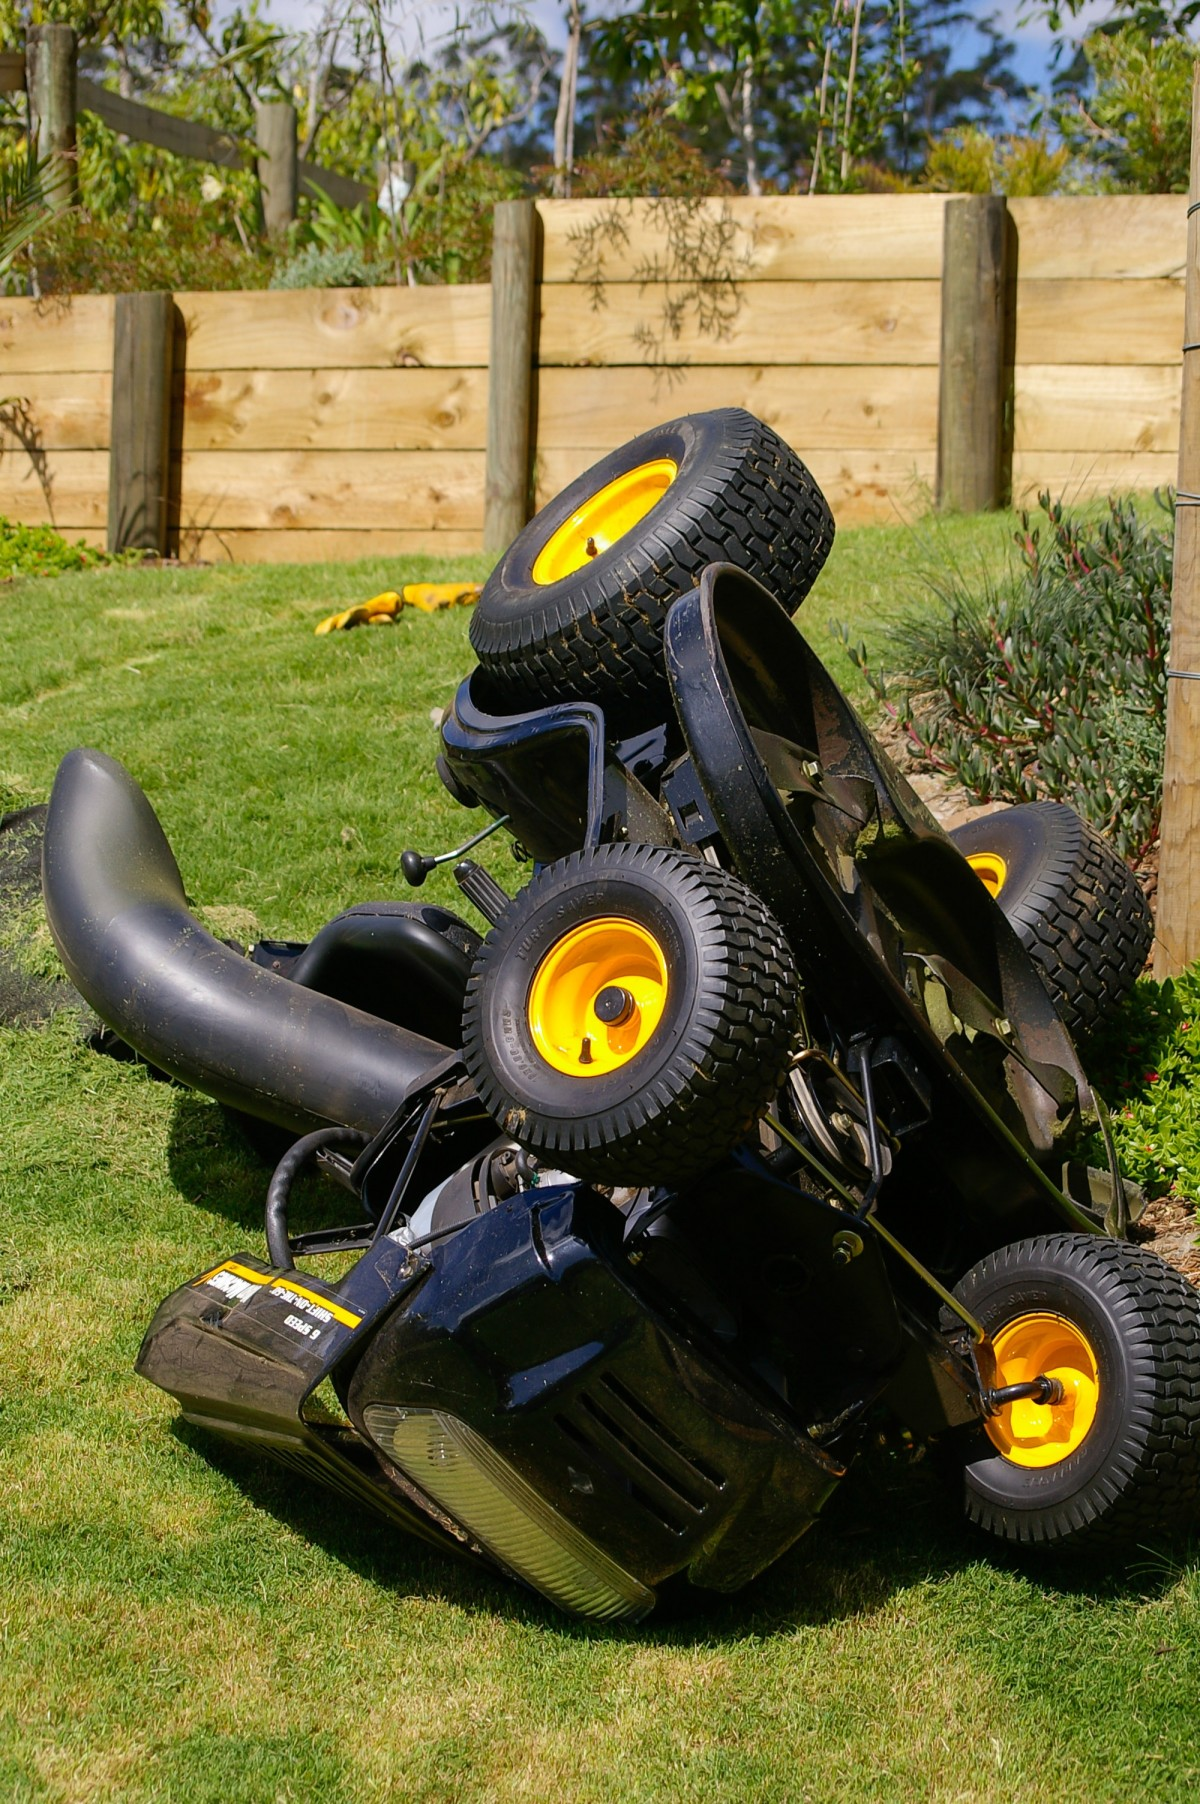 mower%20accident-new.jpg